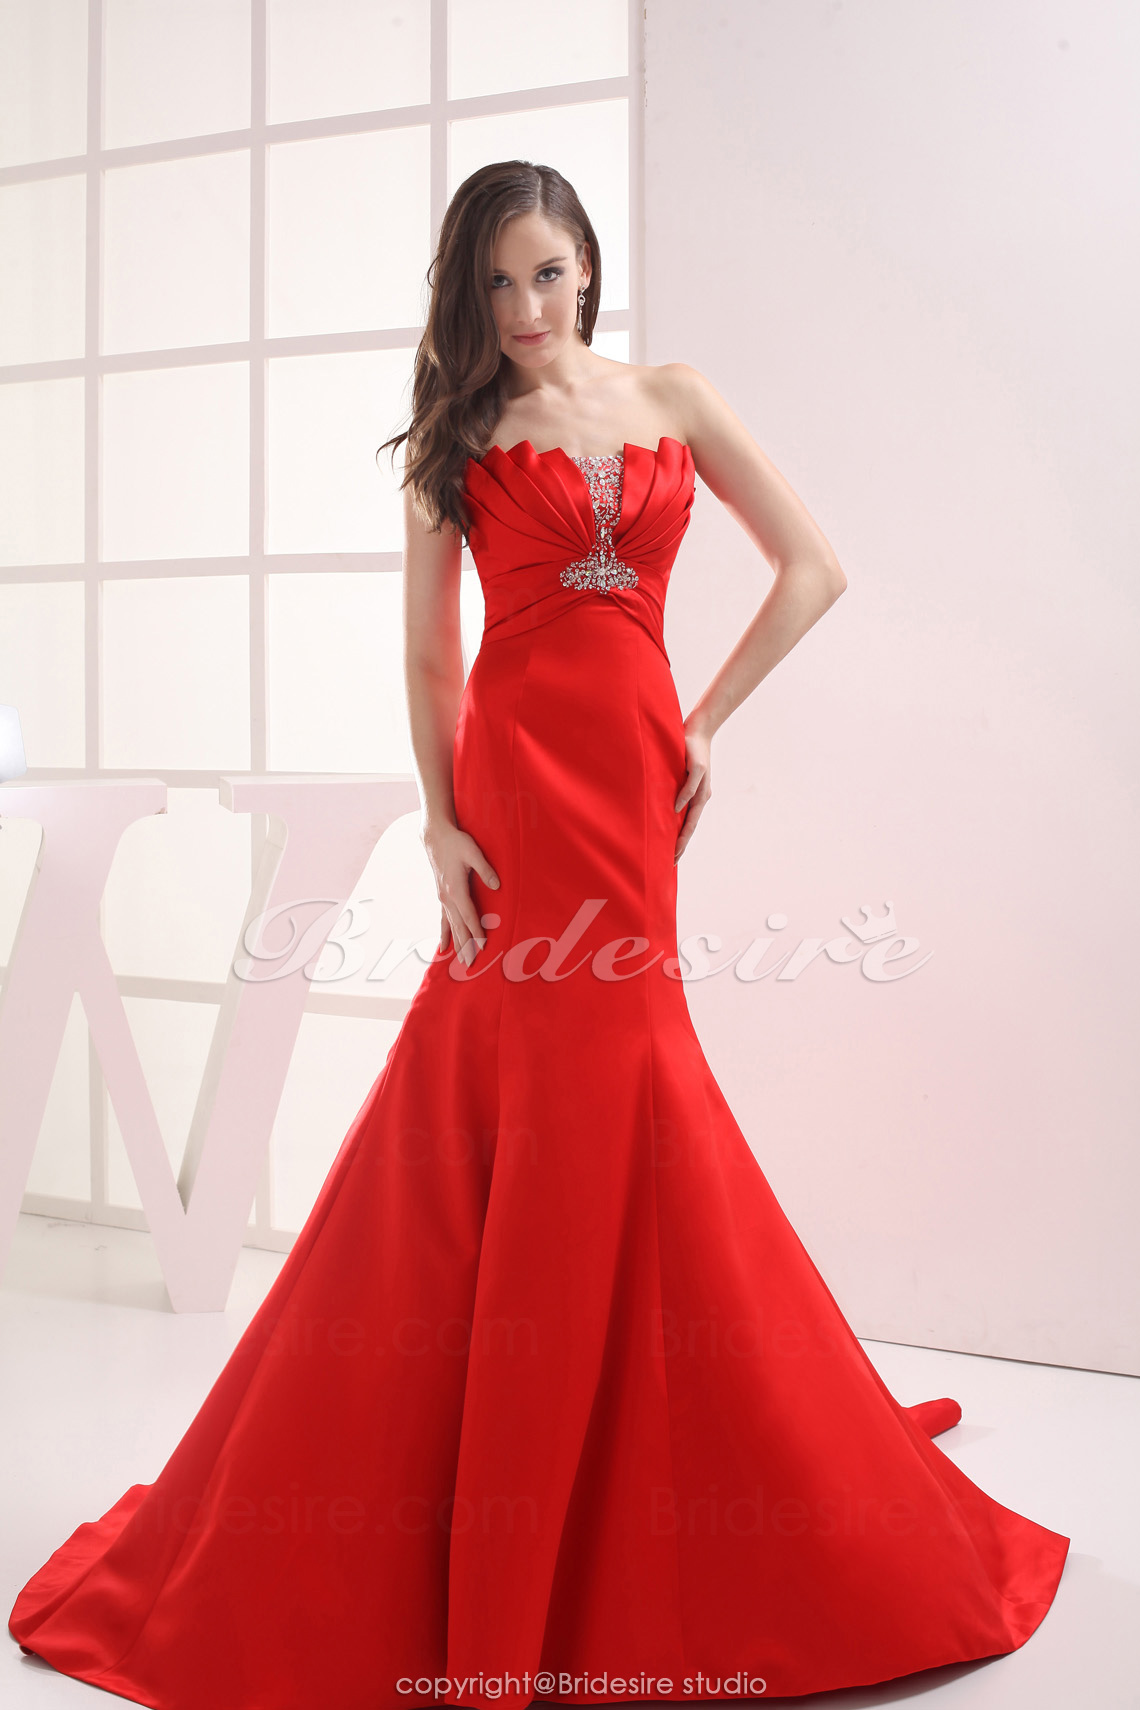 Trumpet/Mermaid Strapless Chapel Train Sleeveless Satin Dress